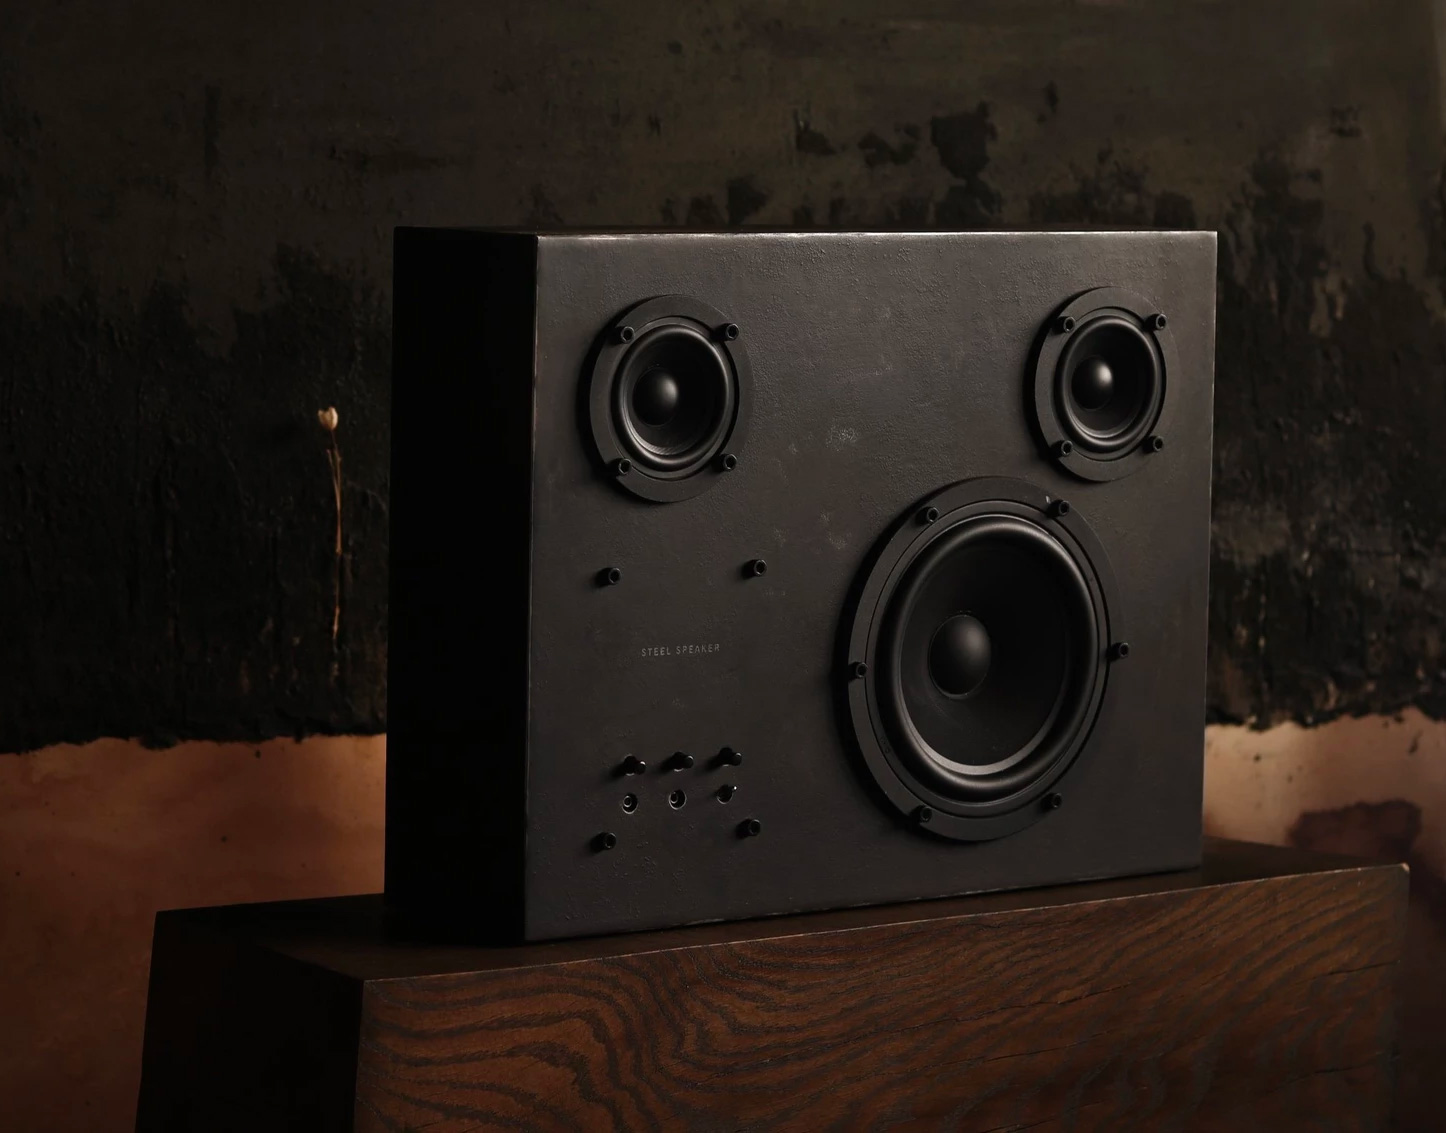 The Steel Speaker Brings Bluetooth to the Blacksmith at werd.com